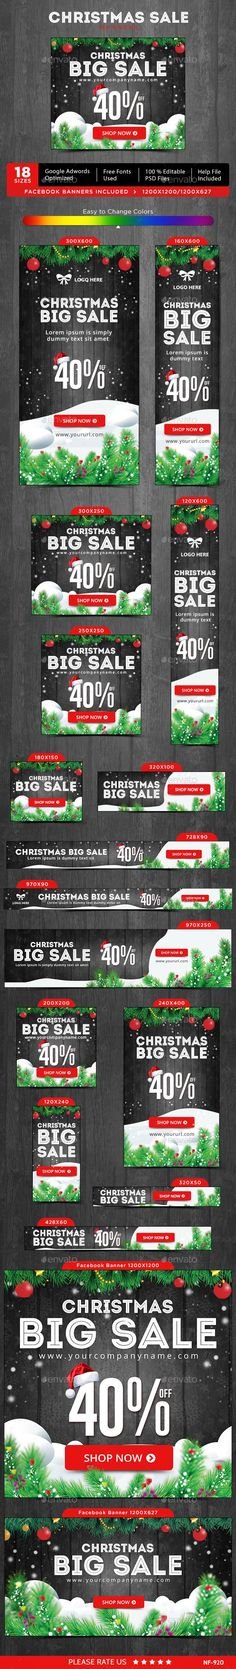 Christmas Sale Web Banners Template PSD #design #ads Download: http://graphicriver.net/item/christmas-sale-banners/14032936?ref=ksioks